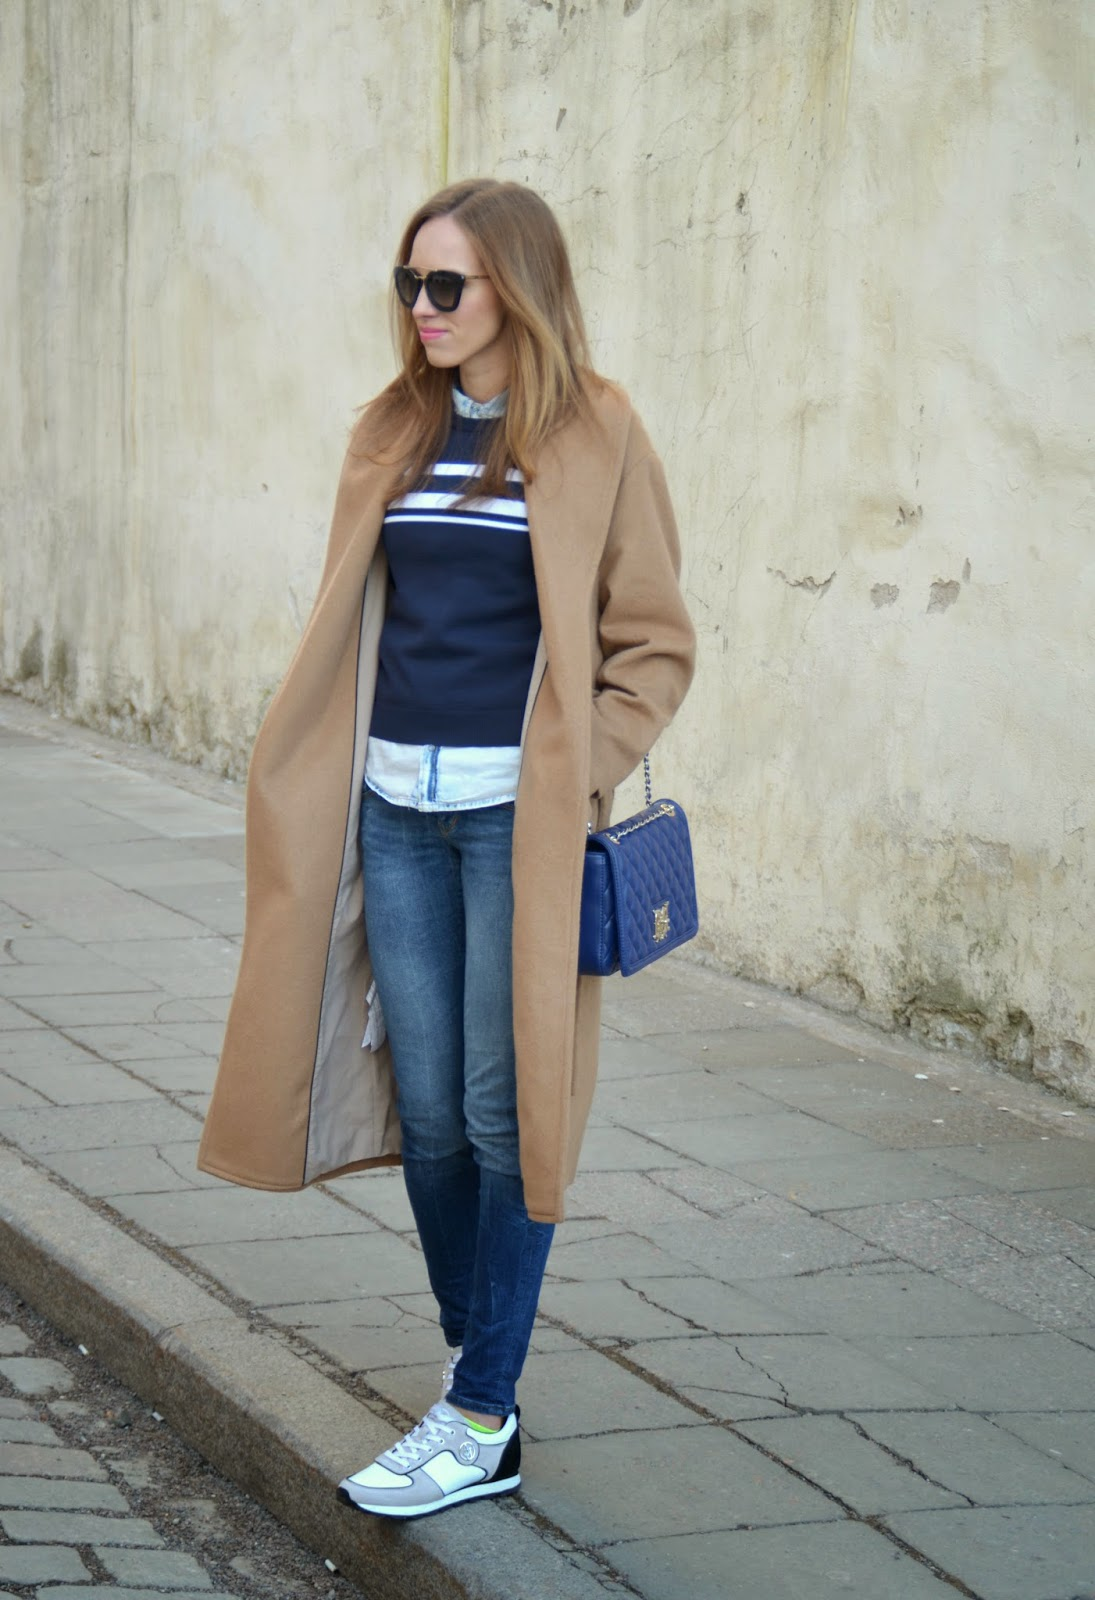 mango-camel-coat-navy-striped-sweater-guess-jeans-armani-white-sneakers kristjaana mere